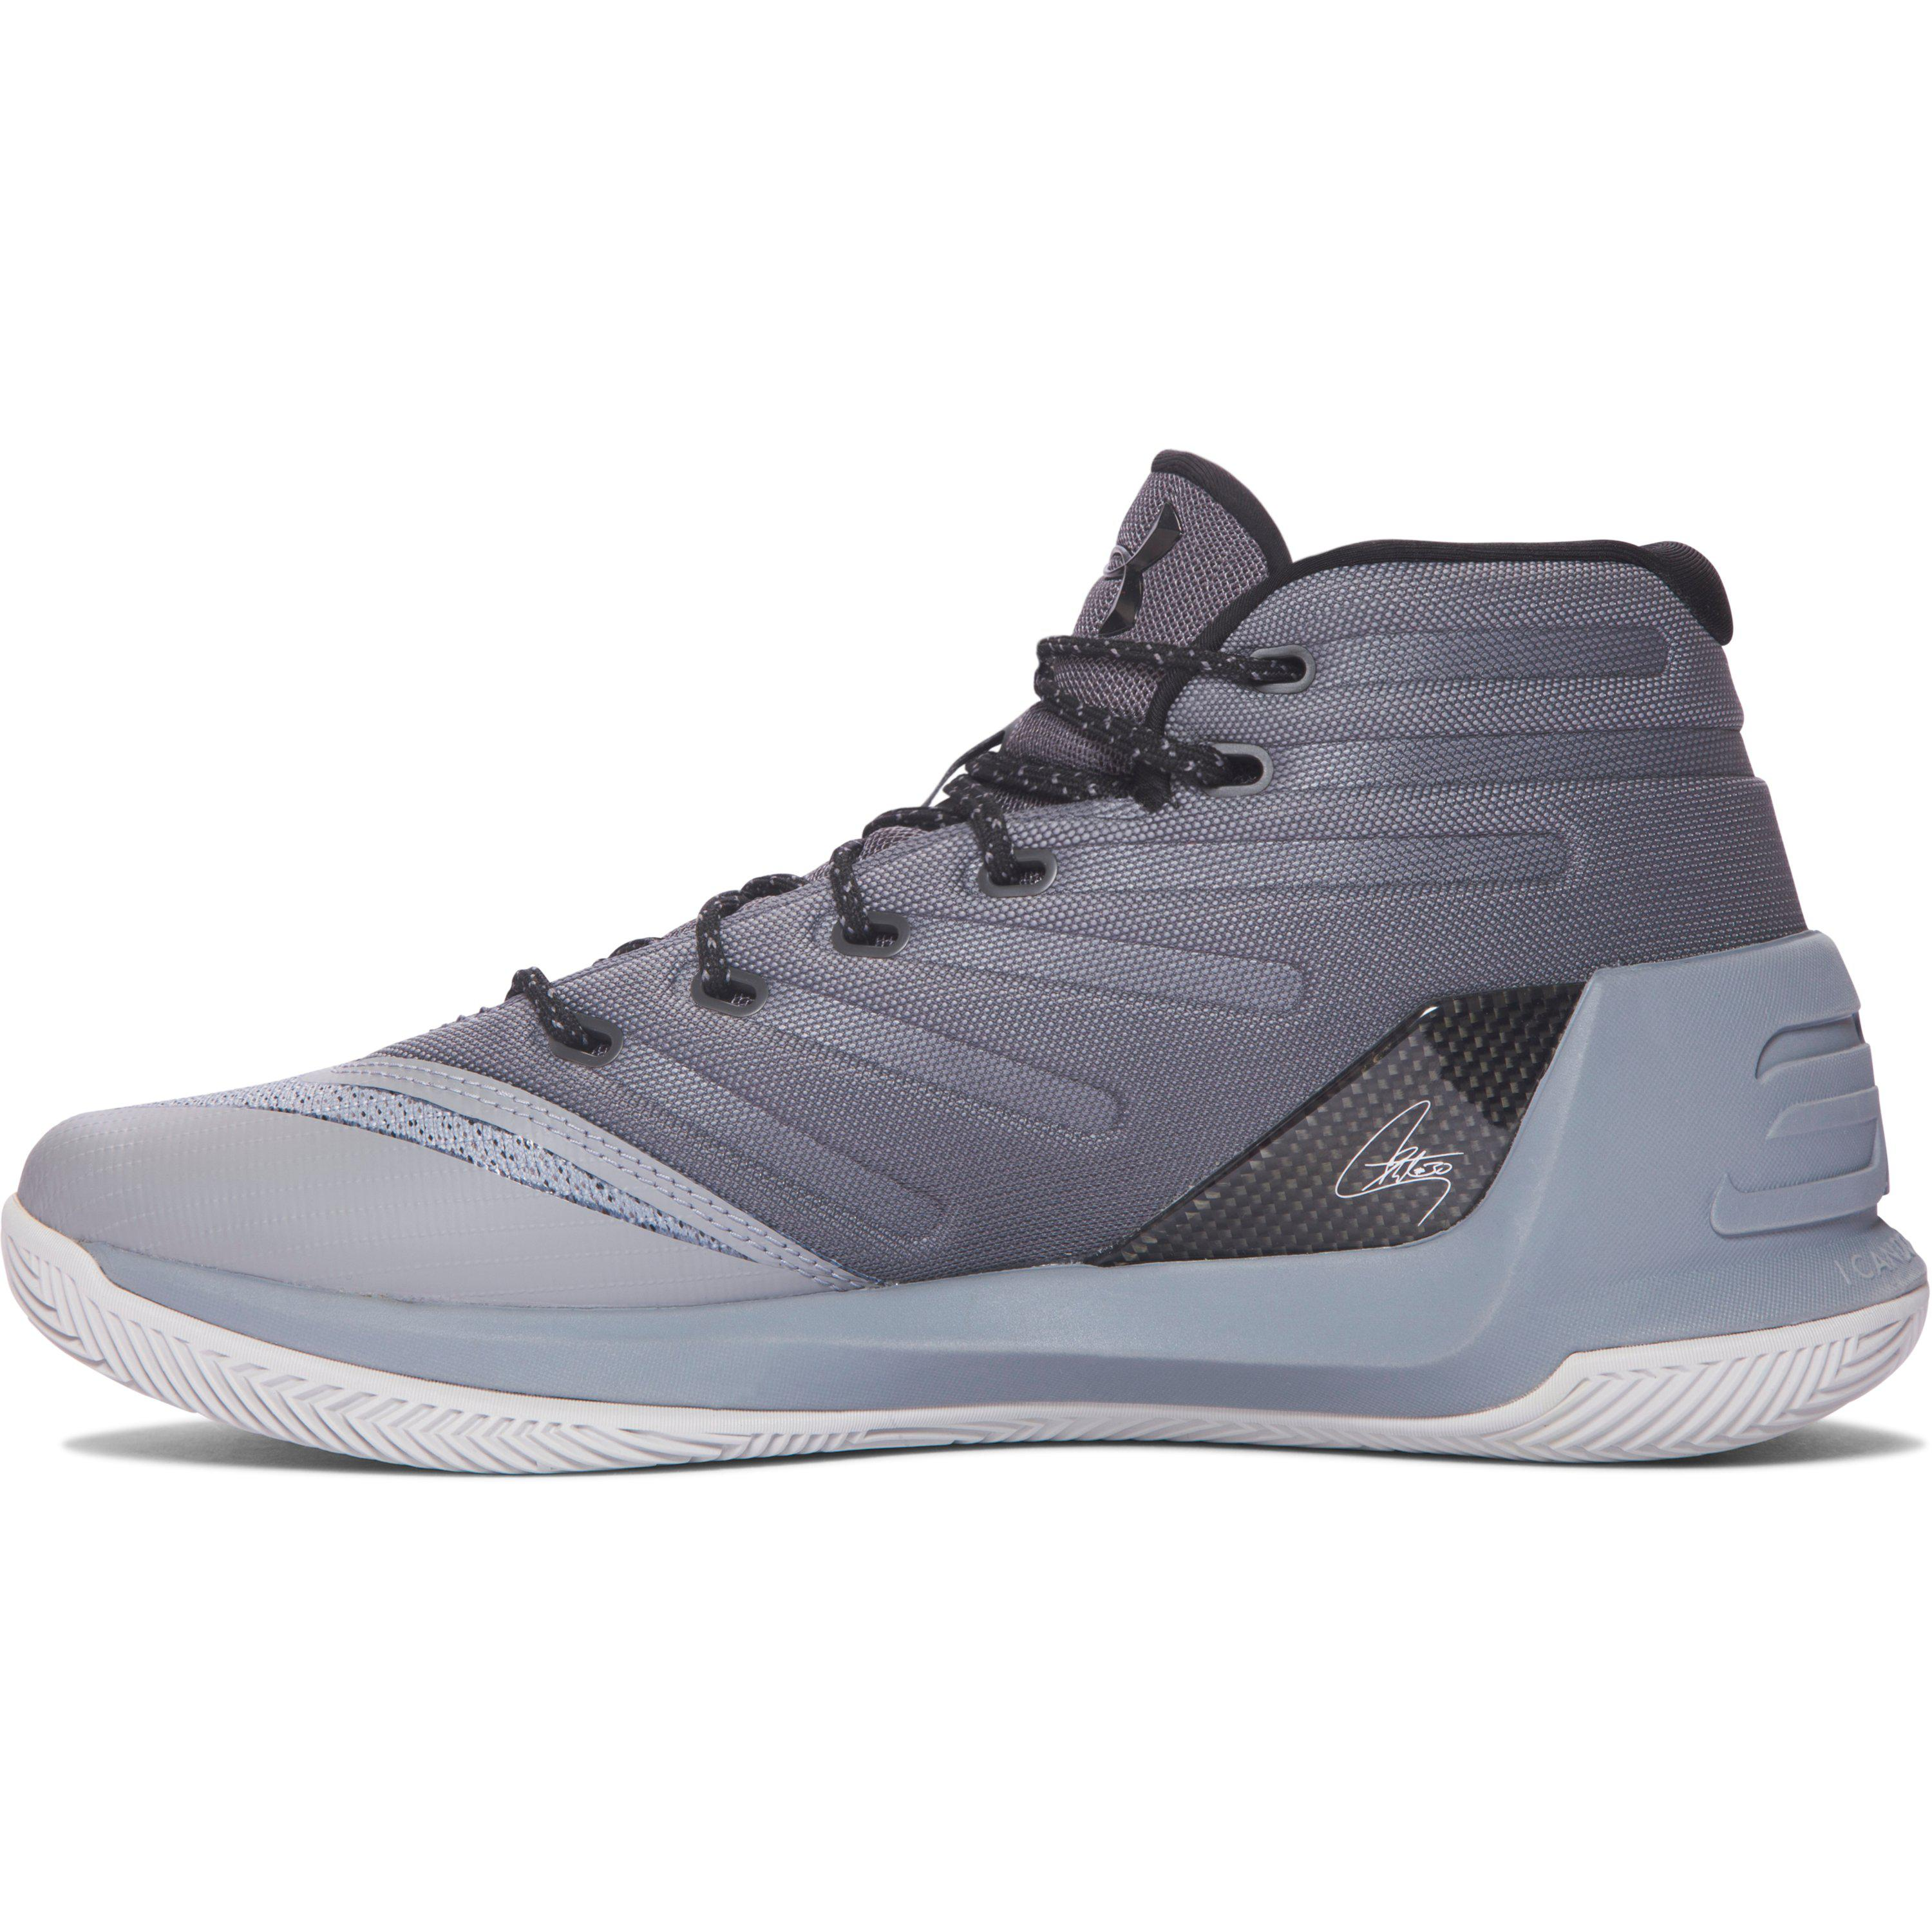 3efe1683abd4 Lyst - Under Armour Men s Ua Curry 3 Basketball Shoes for Men